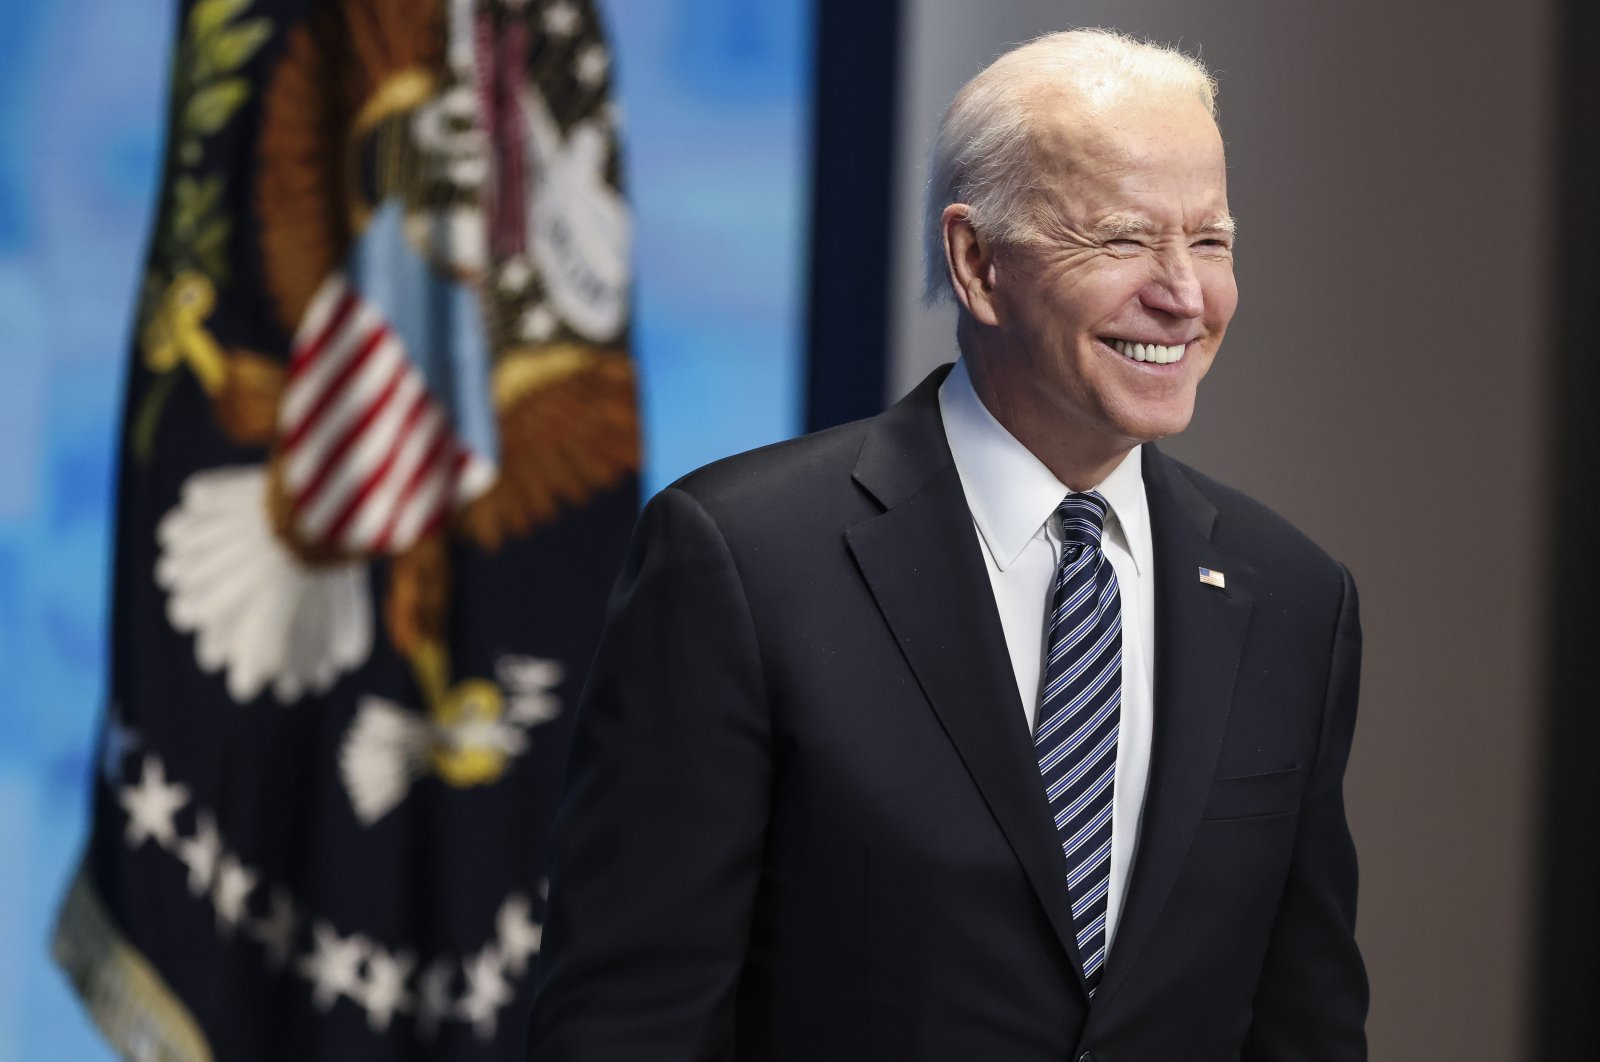 US President Joe Biden delivers remarks on COVID-19 response and the vaccination program, from the South Court Auditorium at the White House, in Washington, DC, USA, 12 May 2021. (EPA Photo)